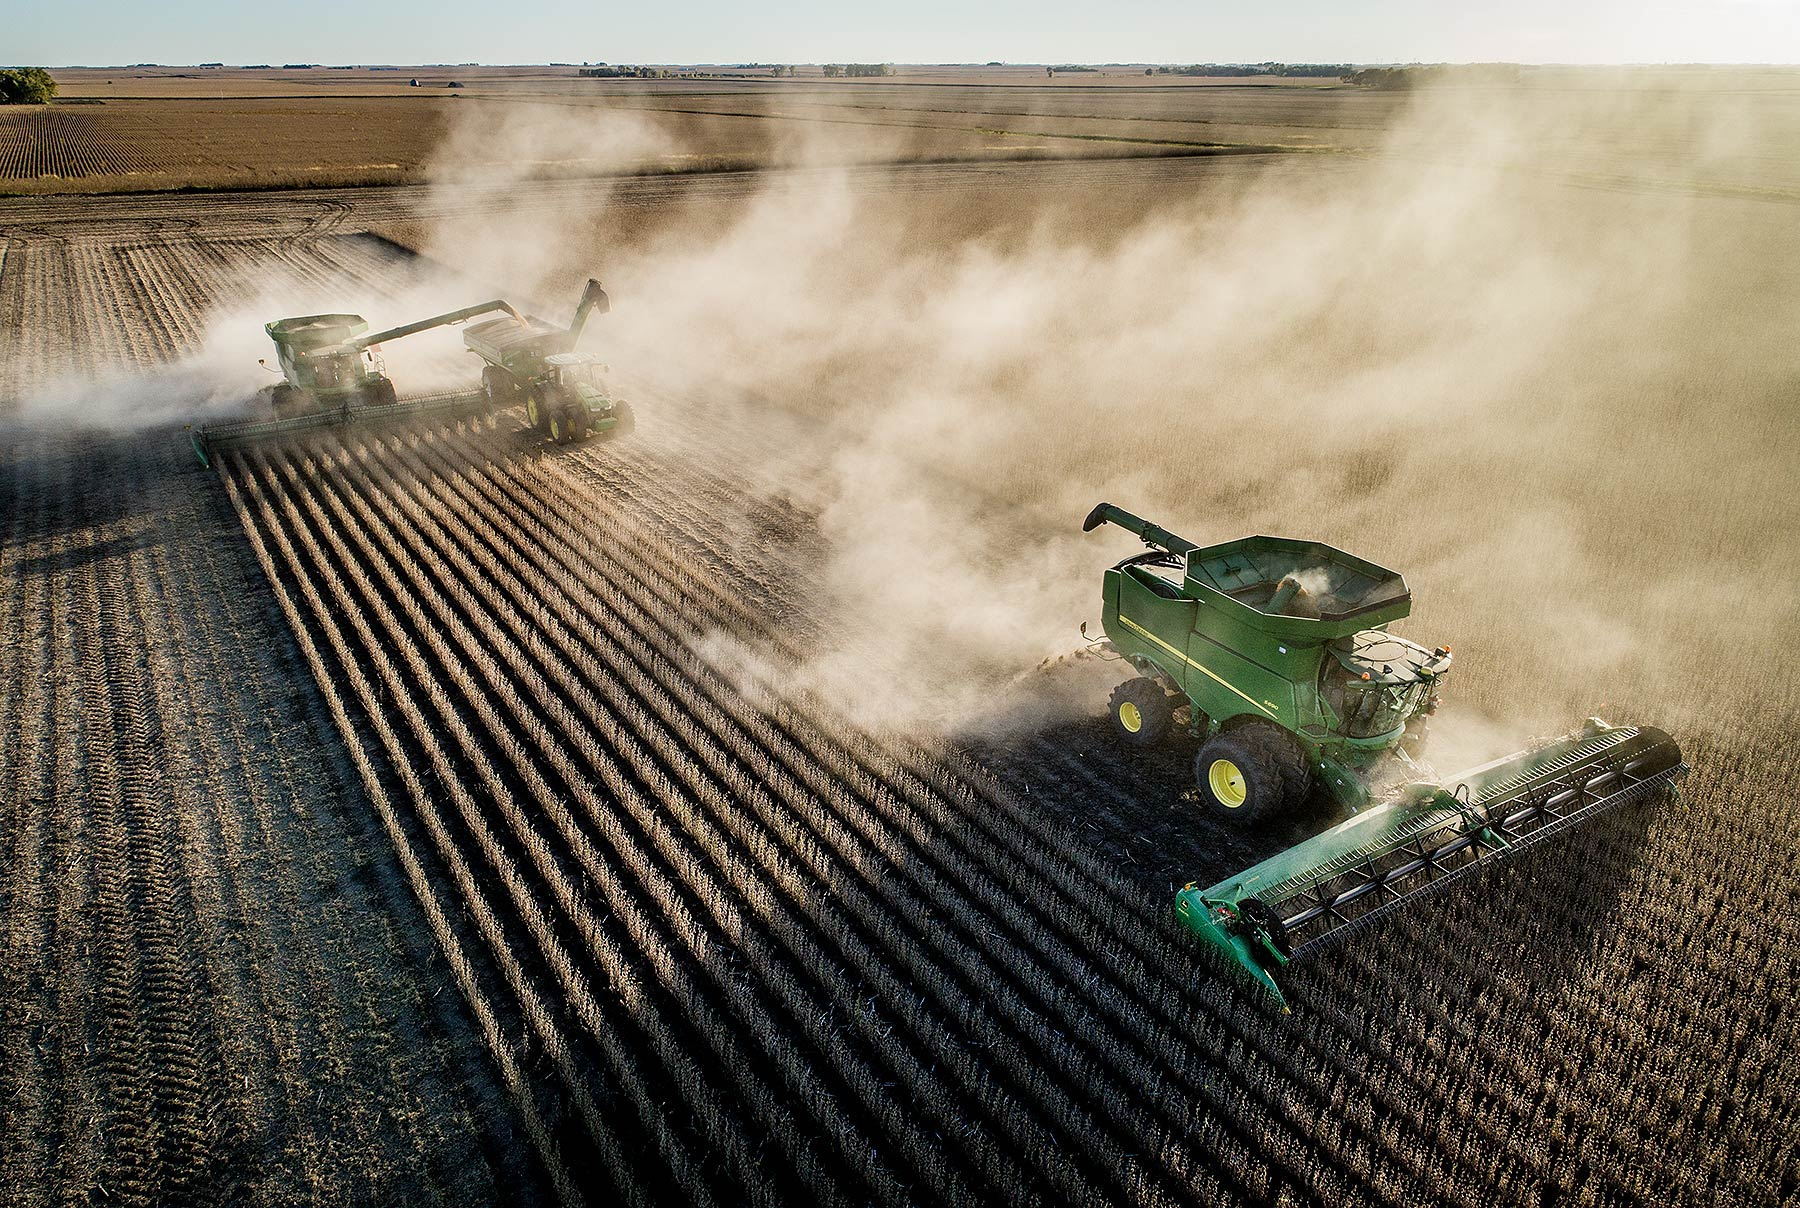 Soybean Harvest Drone Photograph